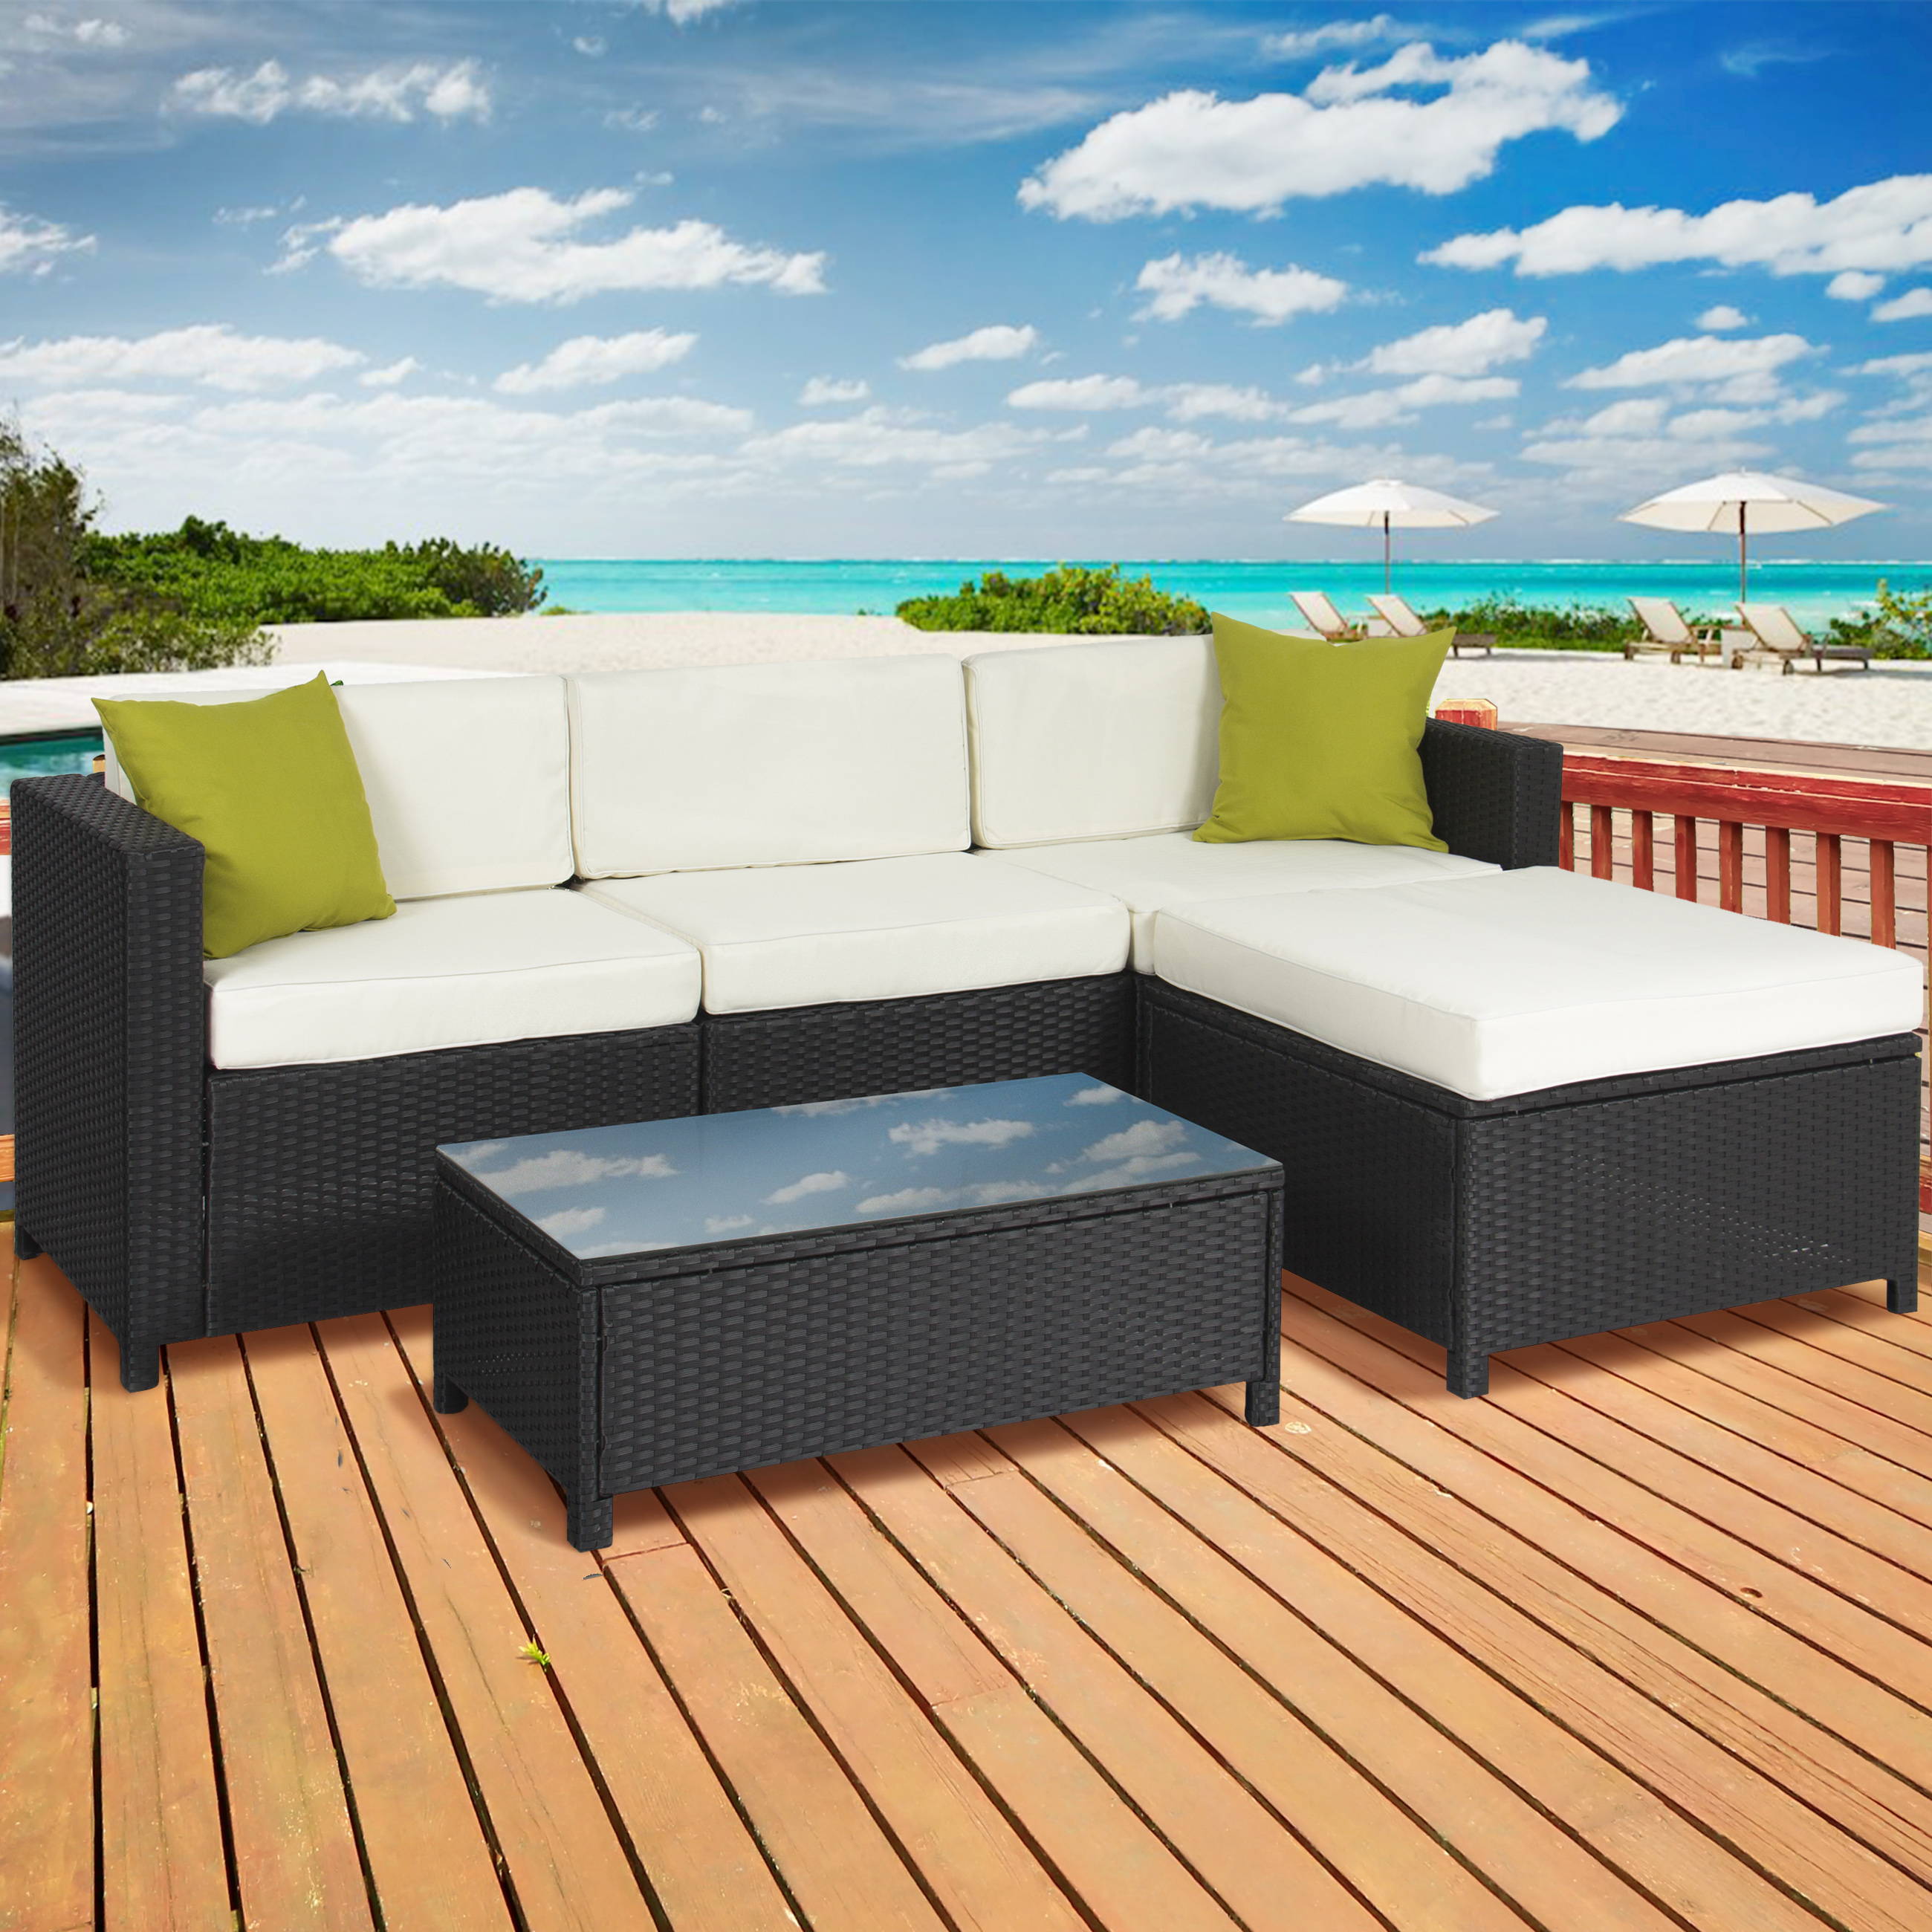 Outdoor Patio Furniture Cushioned 5PC Rattan Wicker Aluminum Frame Sectional Sofa Set : wicker sectional - Sectionals, Sofas & Couches